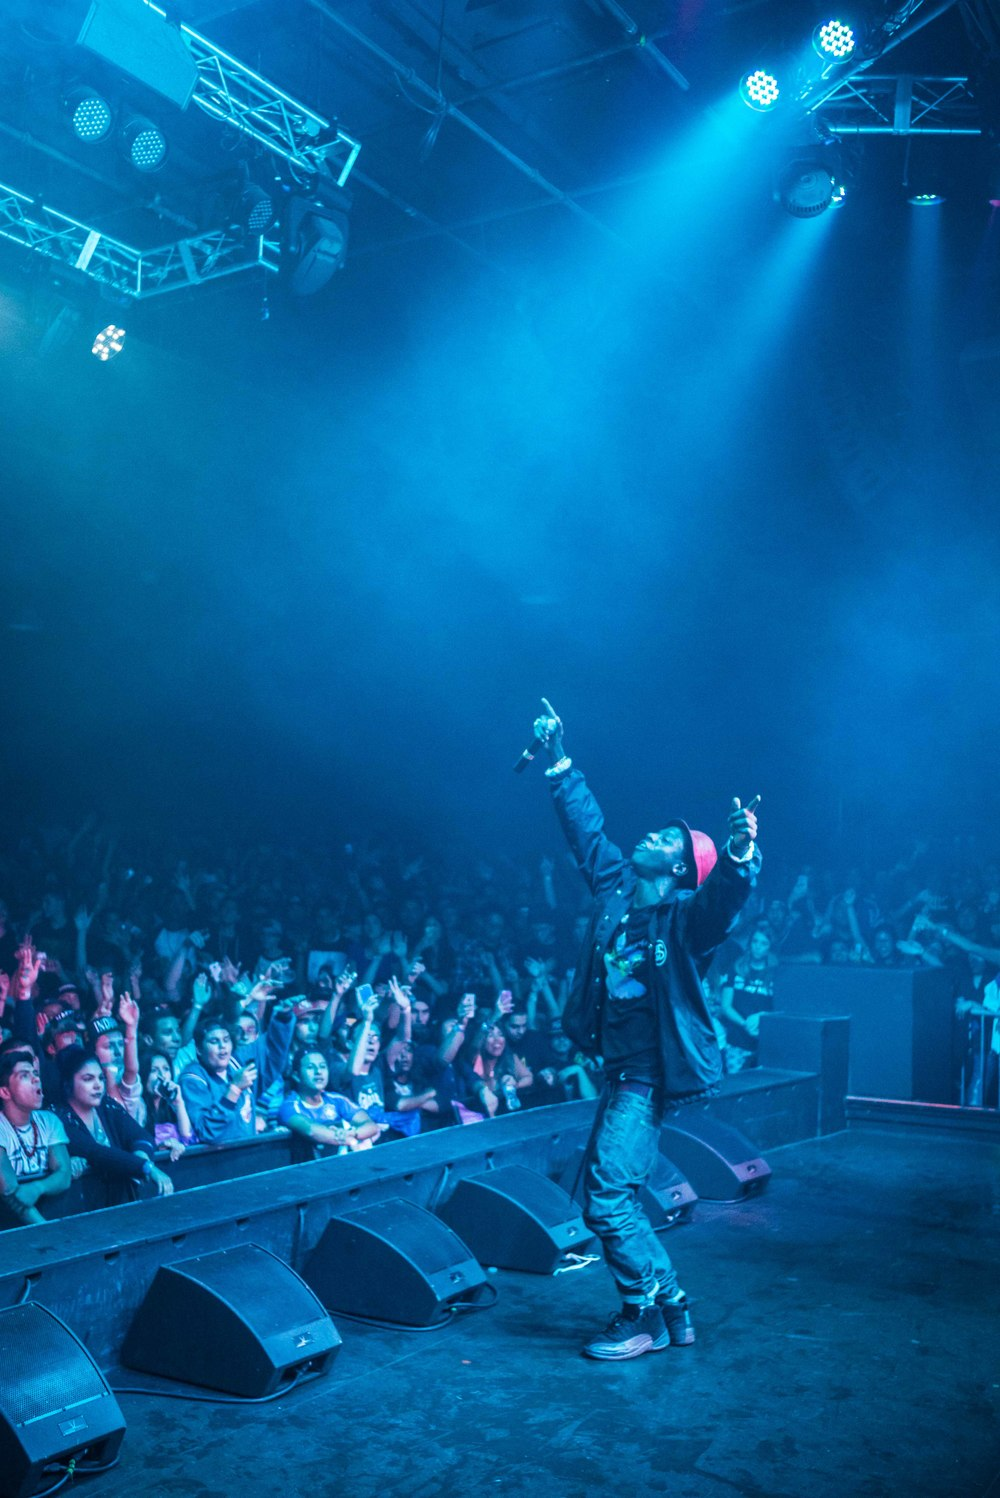 Joey Badass @ The Smoker's Club Tour